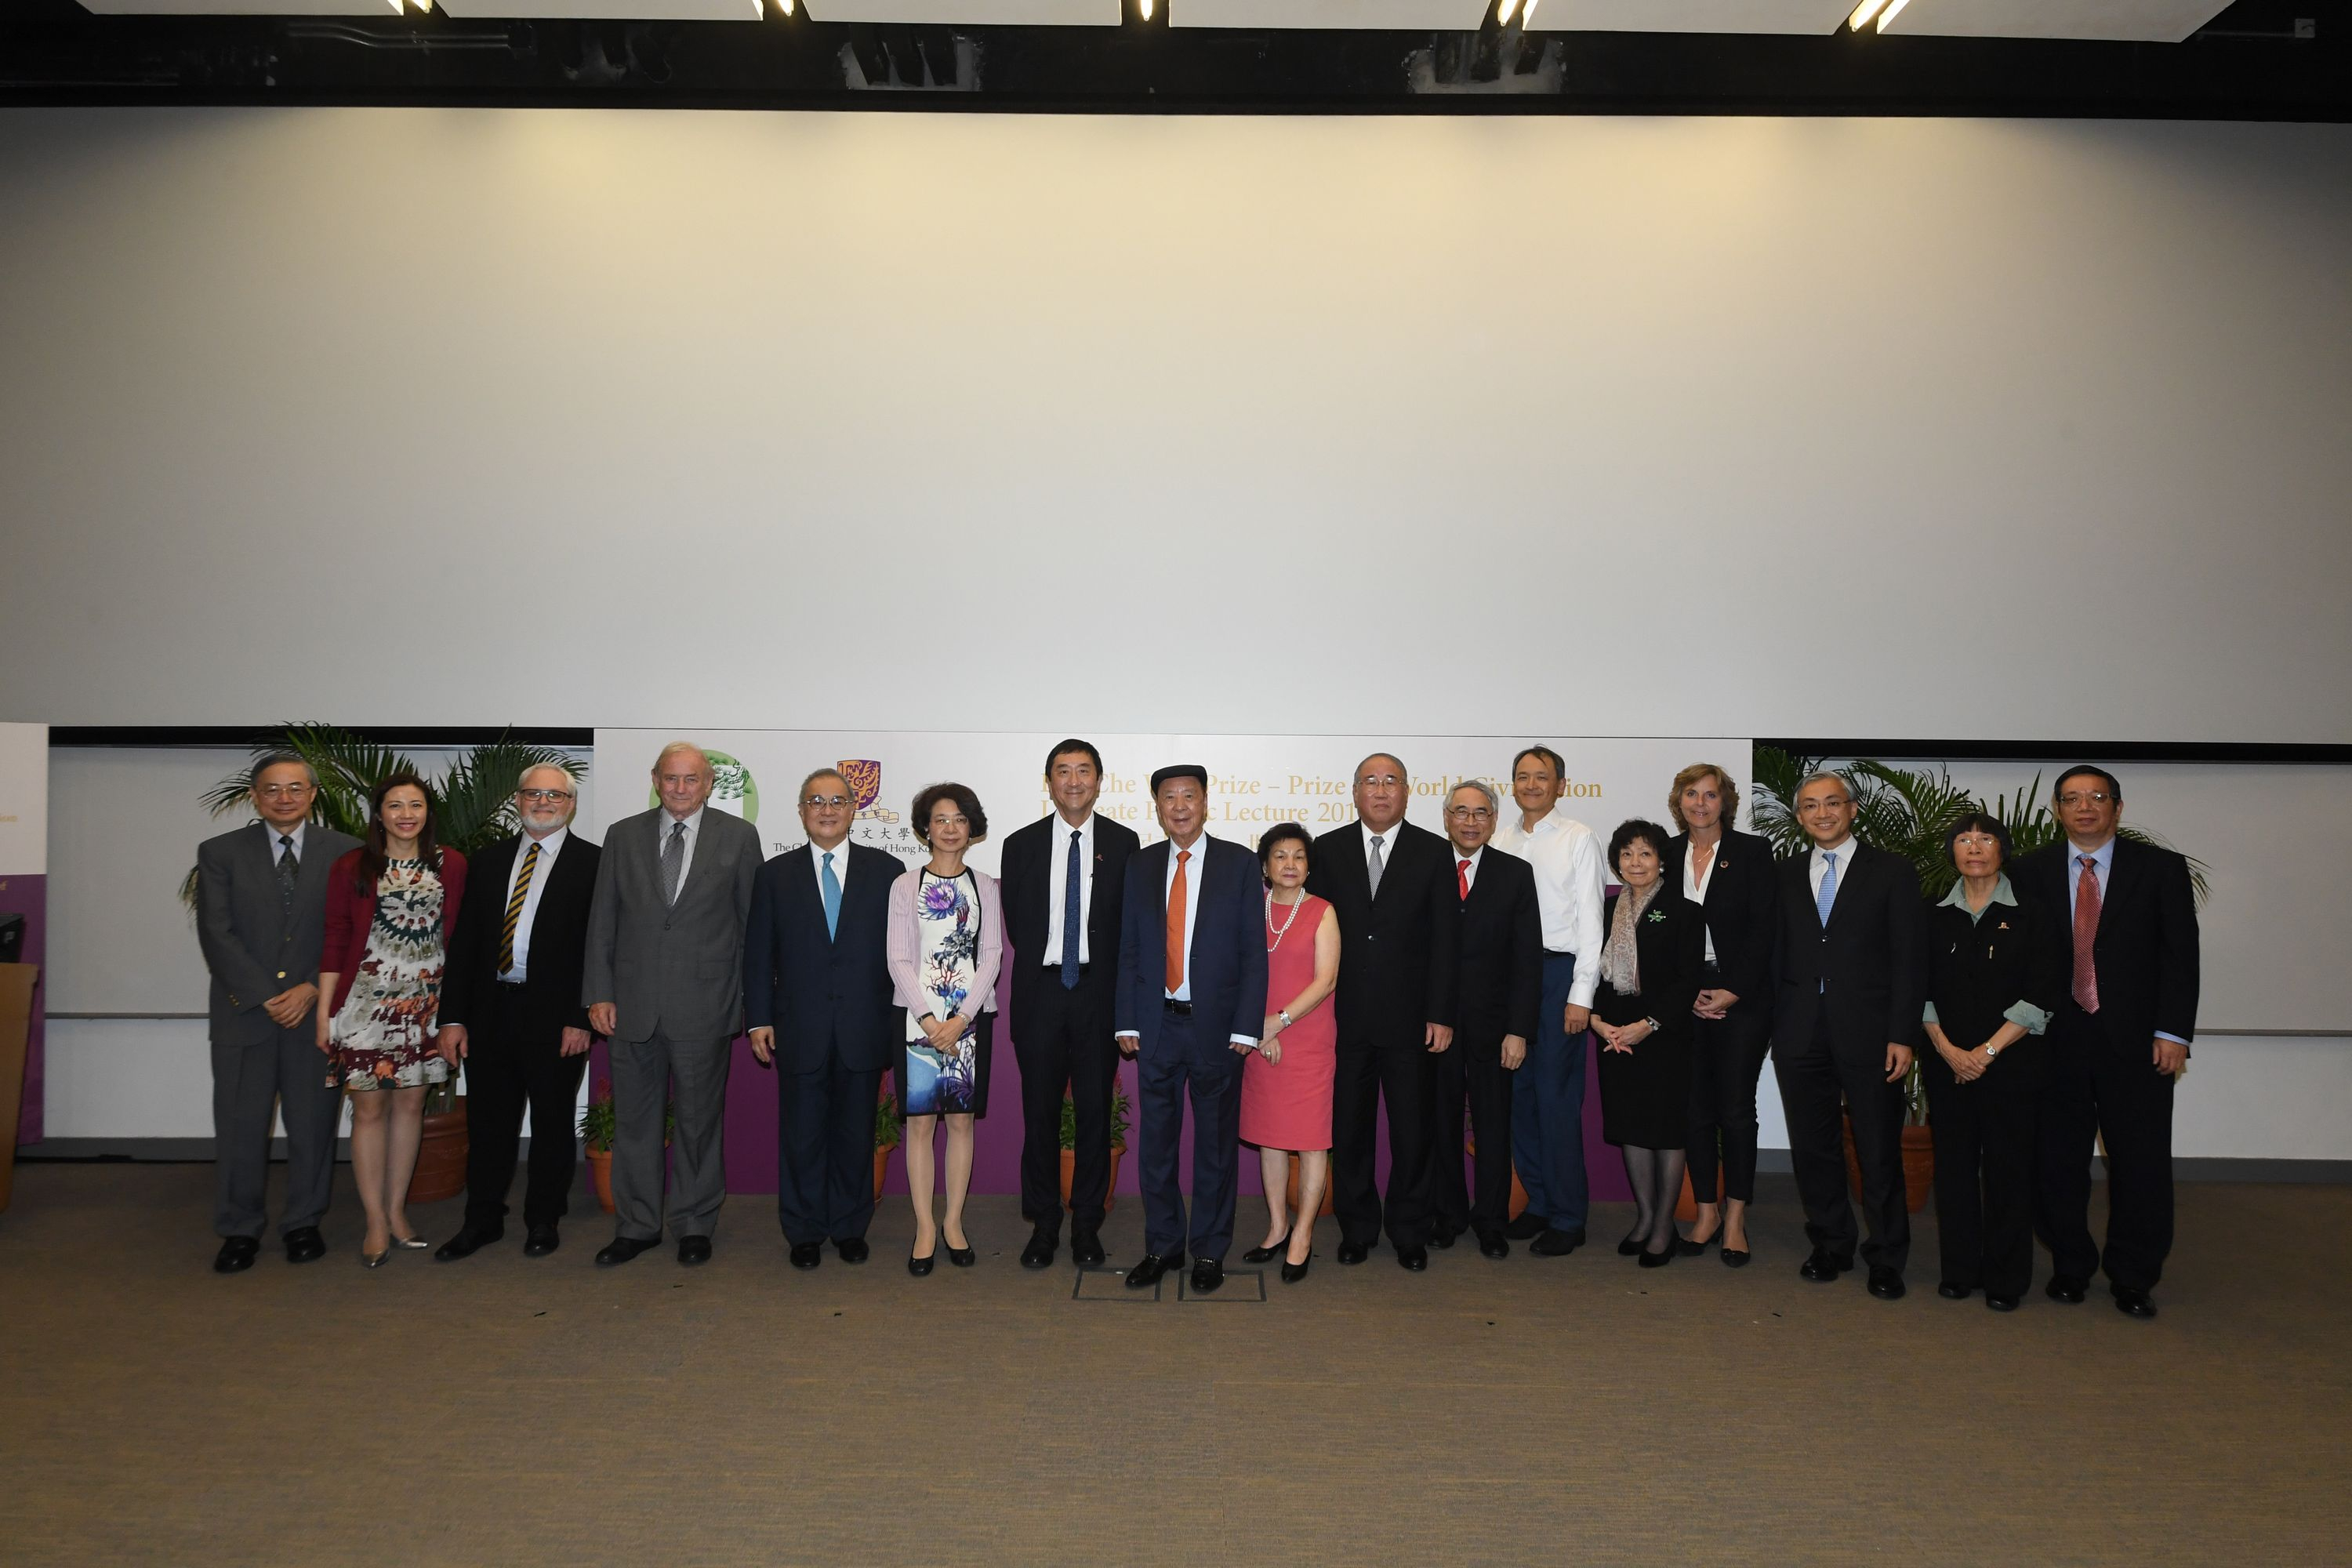 From left: Prof. Gabriel Lau, Director of Institute of Environment, Energy and Sustainability, CUHK; Ms. Vicky Lee, Chief Executive Officer, LUI Che Woo Prize Limited; Prof. Julian May, Member of 2017 Selection Panel; Prof. Sir Colin Lucas, Member of Prize Recommendation Committee; Dr. Moses Cheng, Member of Board of Governors, LUI Che Woo Prize Limited; Mrs. Paddy Tang Lui Wai Yu, Executive Director of K. Wah International Holdings Limited; Prof. Joseph Sung, Vice-Chancellor and President, CUHK; Dr. Lui Che Woo, Founder and Chairman of the Board of Governors cum Prize Council, LUI Che Woo Prize; Mrs. Lui Chiu Kam Ping; Mr. Xie Zhenhua, the Sustainability Prize Laureate of LUI Che Woo Prize 2017; Prof. Lawrence Lau, Chairman of Prize Recommendation Committee; Mr. Lawrence Lui, President of US Stanford Hotels Corporation; Prof. Yeh Wen-hsin, Member of Prize Recommendation Committee; Ms. Connie Hedegaard, Member of 2017 Selection Panel; Mr. Shun Chi-ming, Director of Hong Kong Observatory; Dr. Rebecca Lee, Founder of Polar Museum Foundation Ltd. and Prof. Shen Jianfa, Chairman of Department of Geography and Resource Management, CUHK.